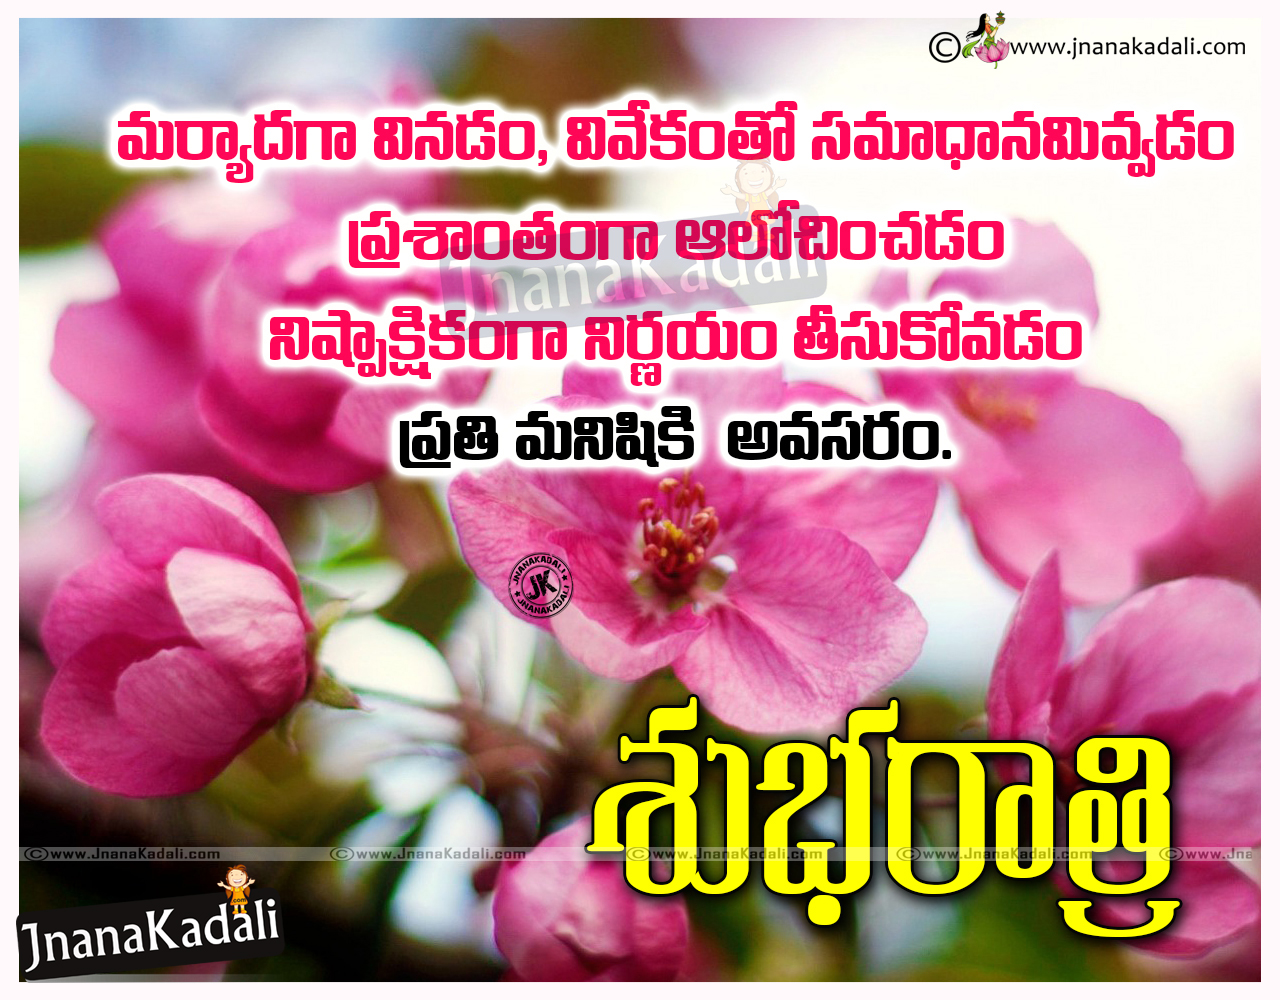 Heart touching good night messages for friends jnana kadali here is heart touching good night messages best telugu lines for friends good night greetings in m4hsunfo